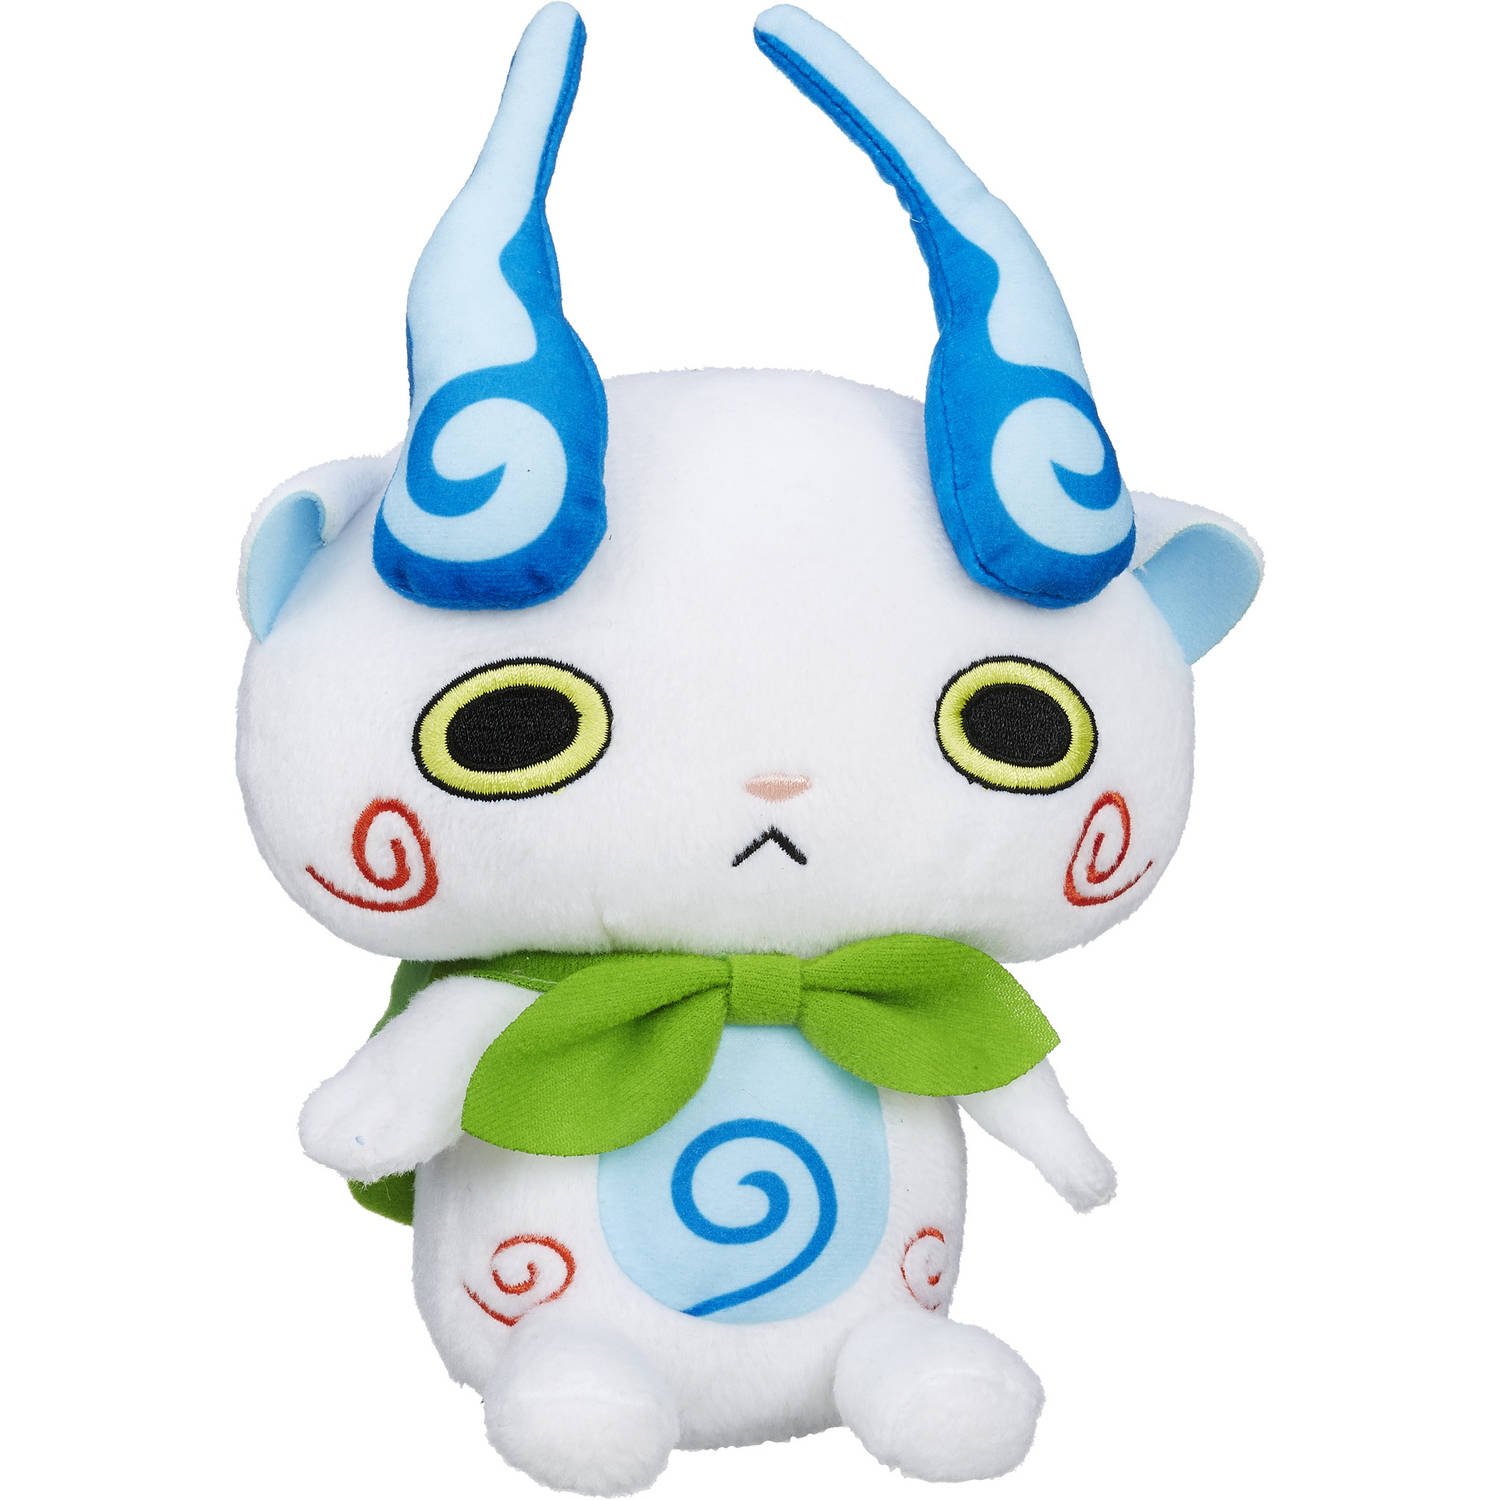 Yo-kai Watch Plush Figures Komasan